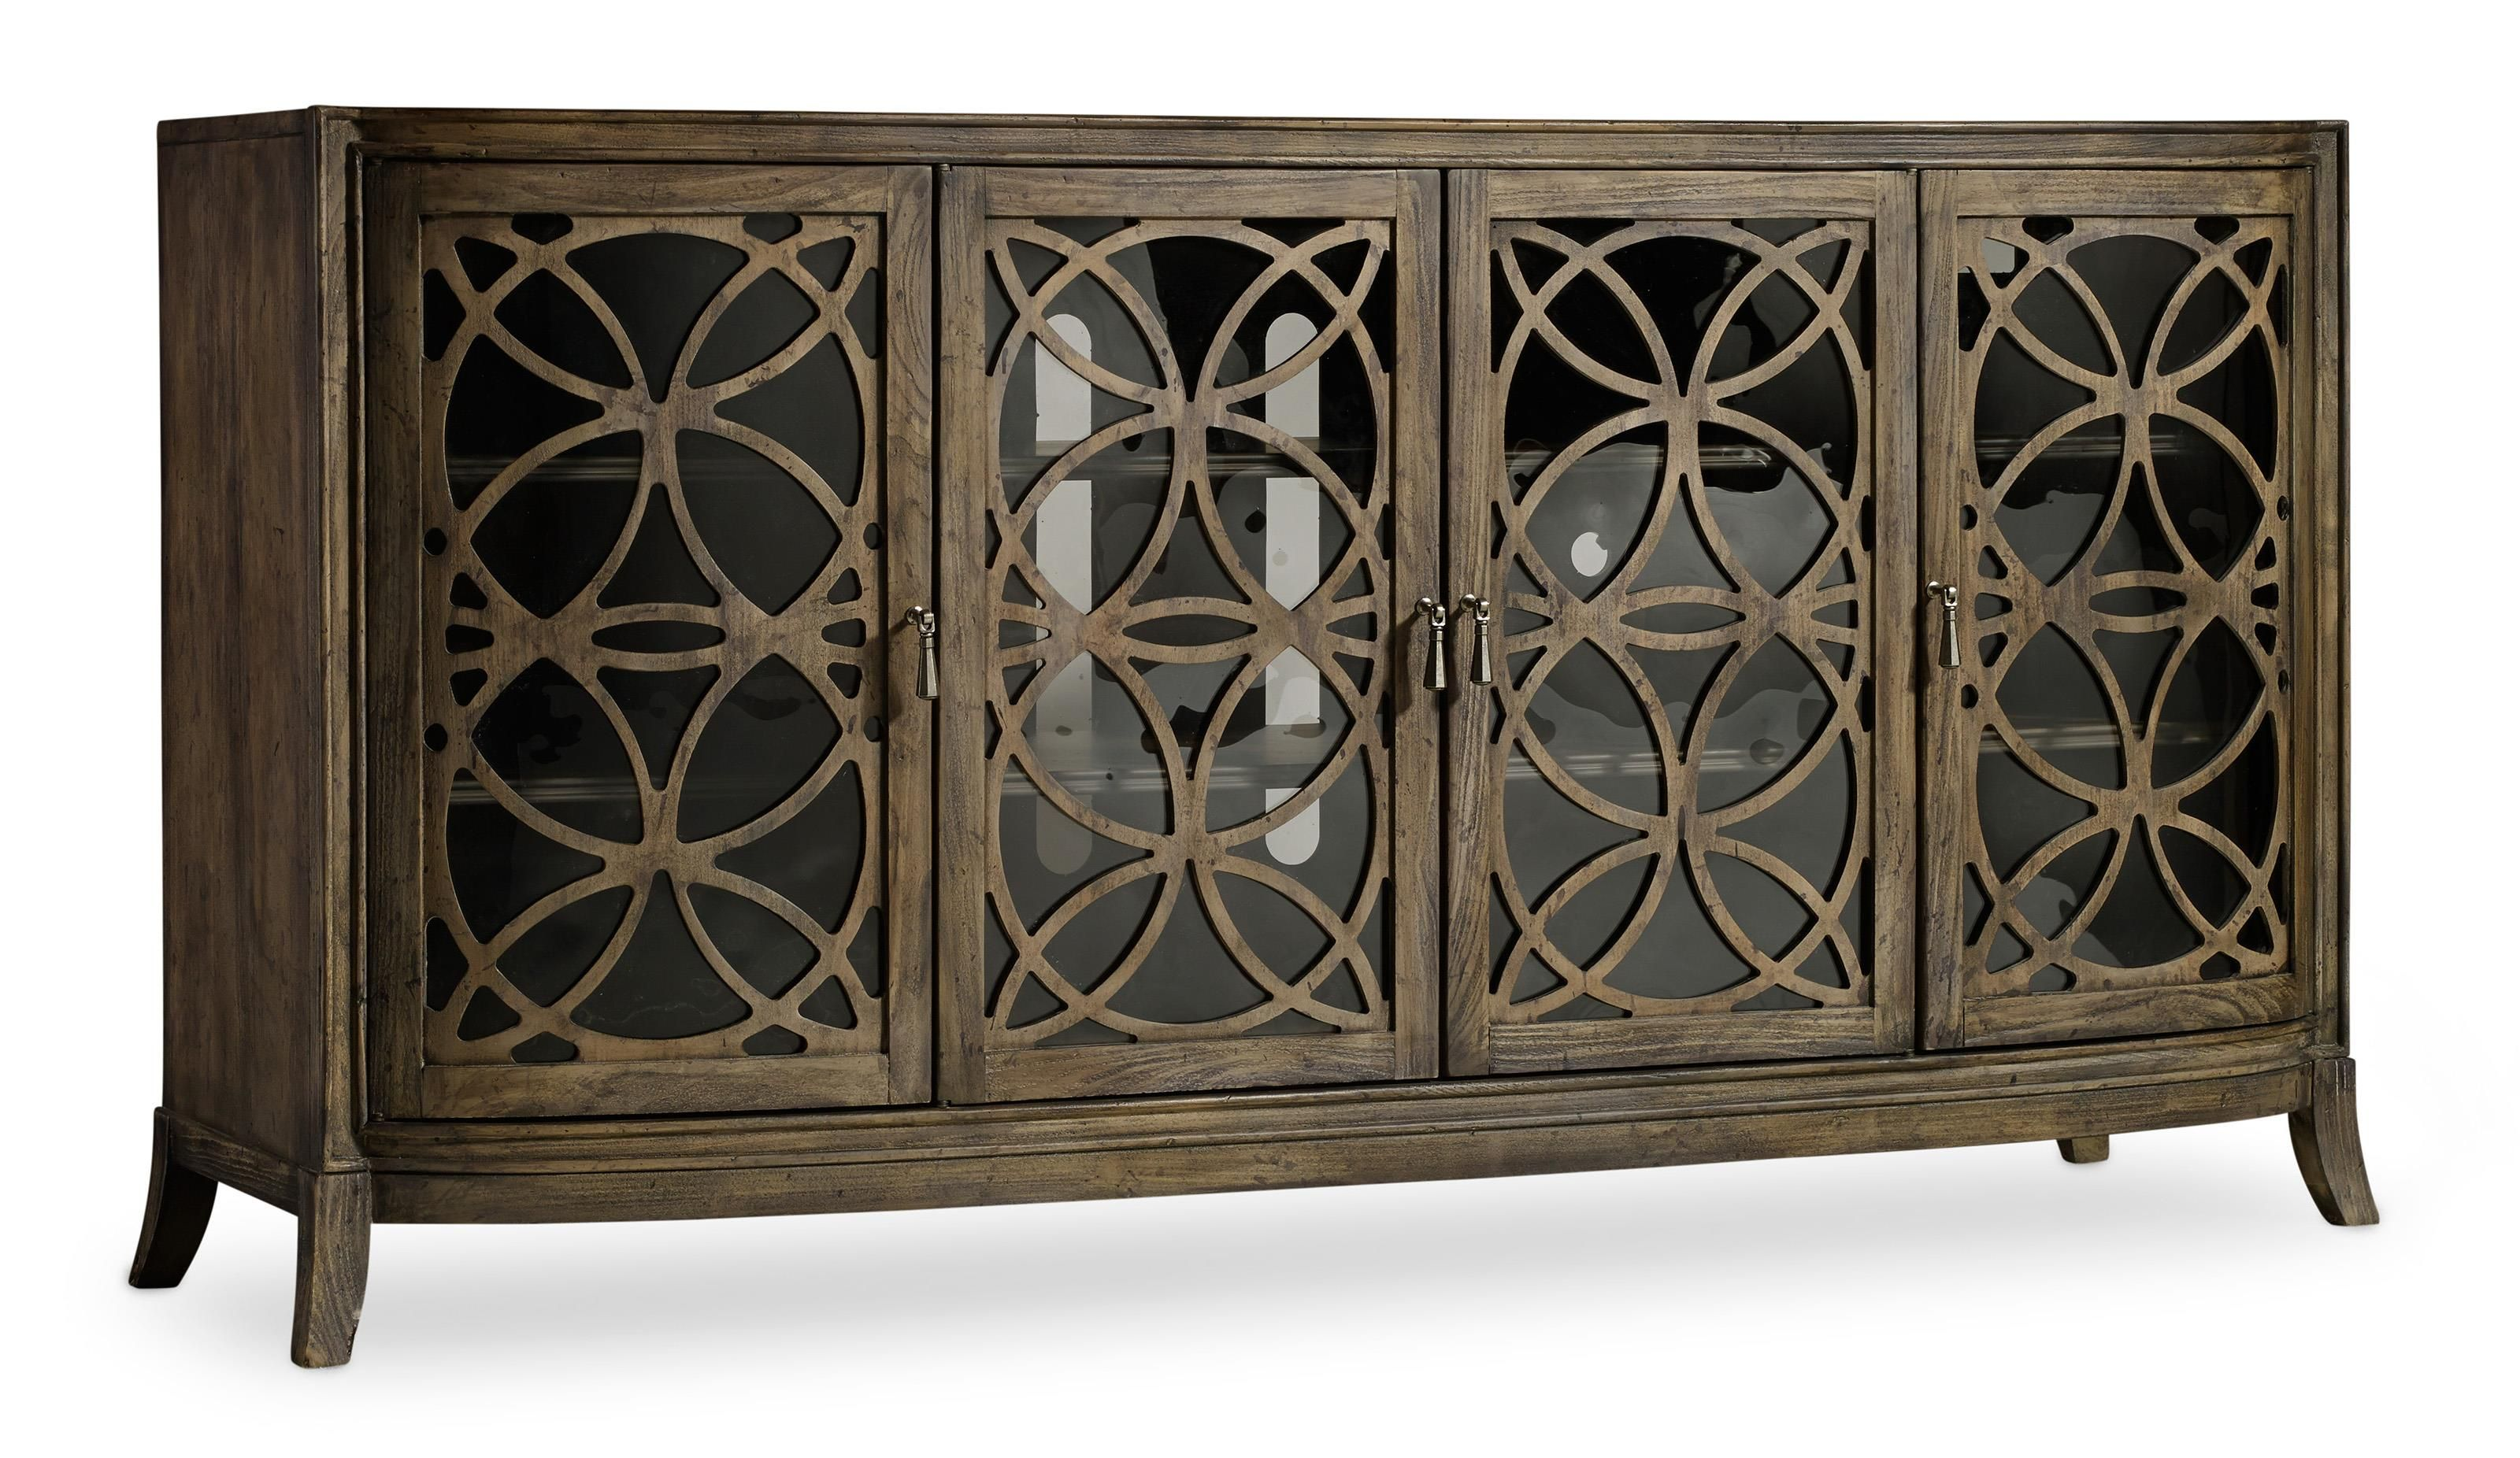 Master bedroom entertainment centers  Sloan Console with Seeded Glass Doors  Home Living Room  Pinterest